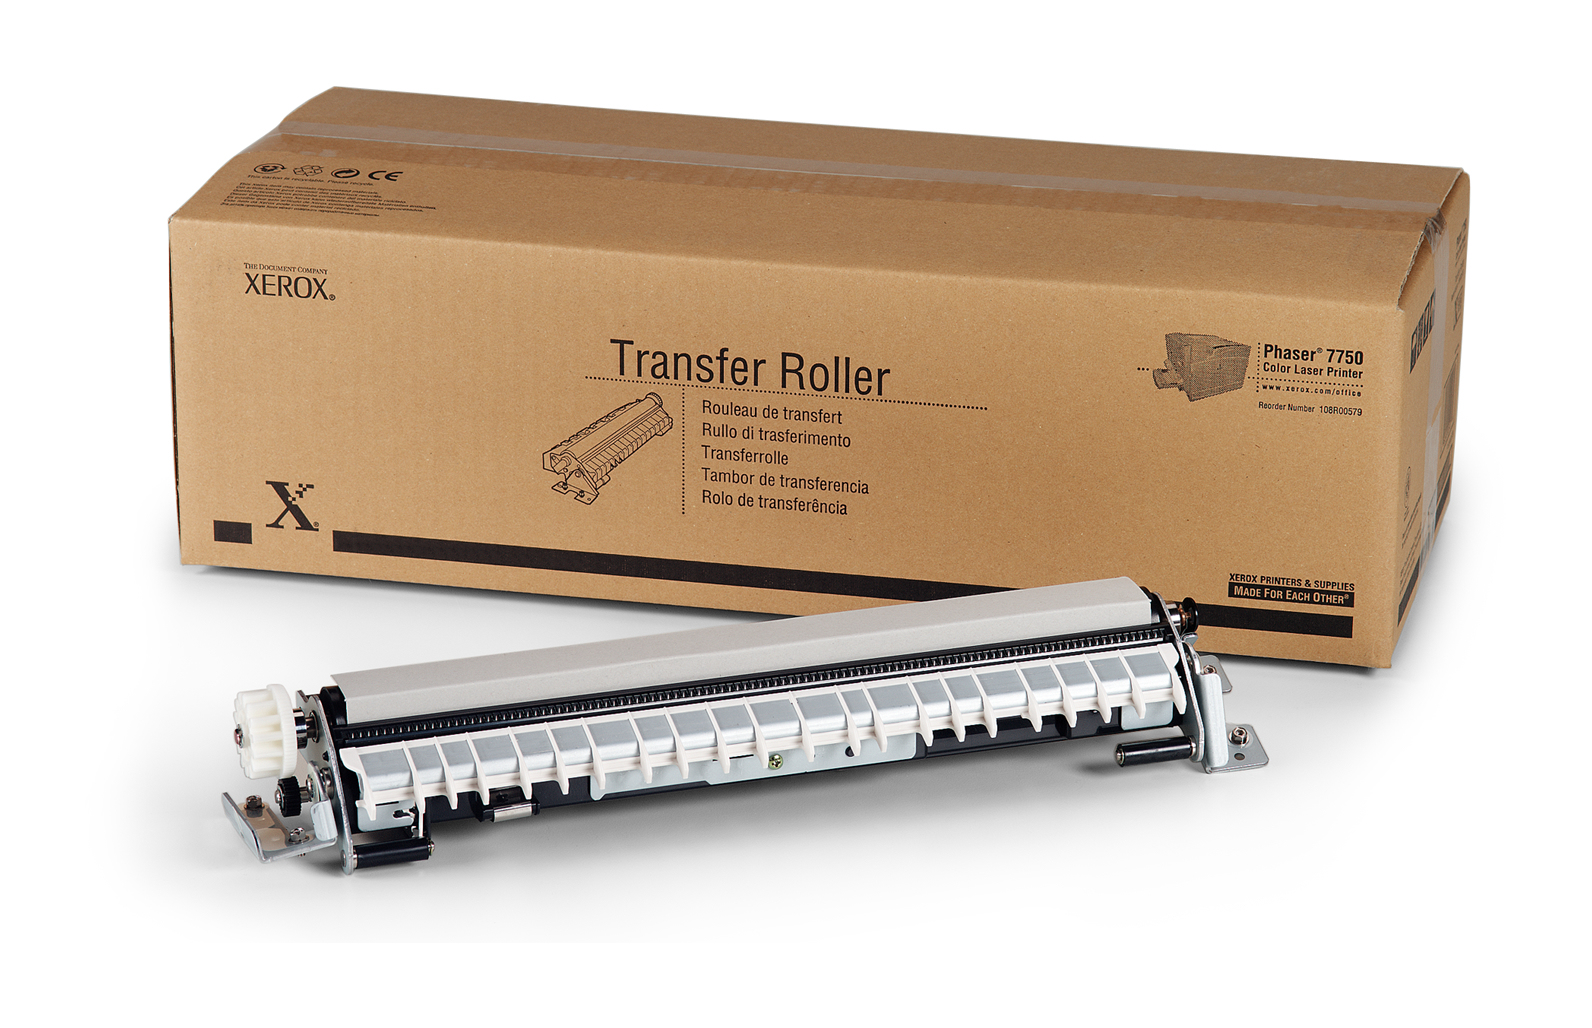 108R00579 Xerox Phaser 7750 Transfer Roller for Phaser 7750